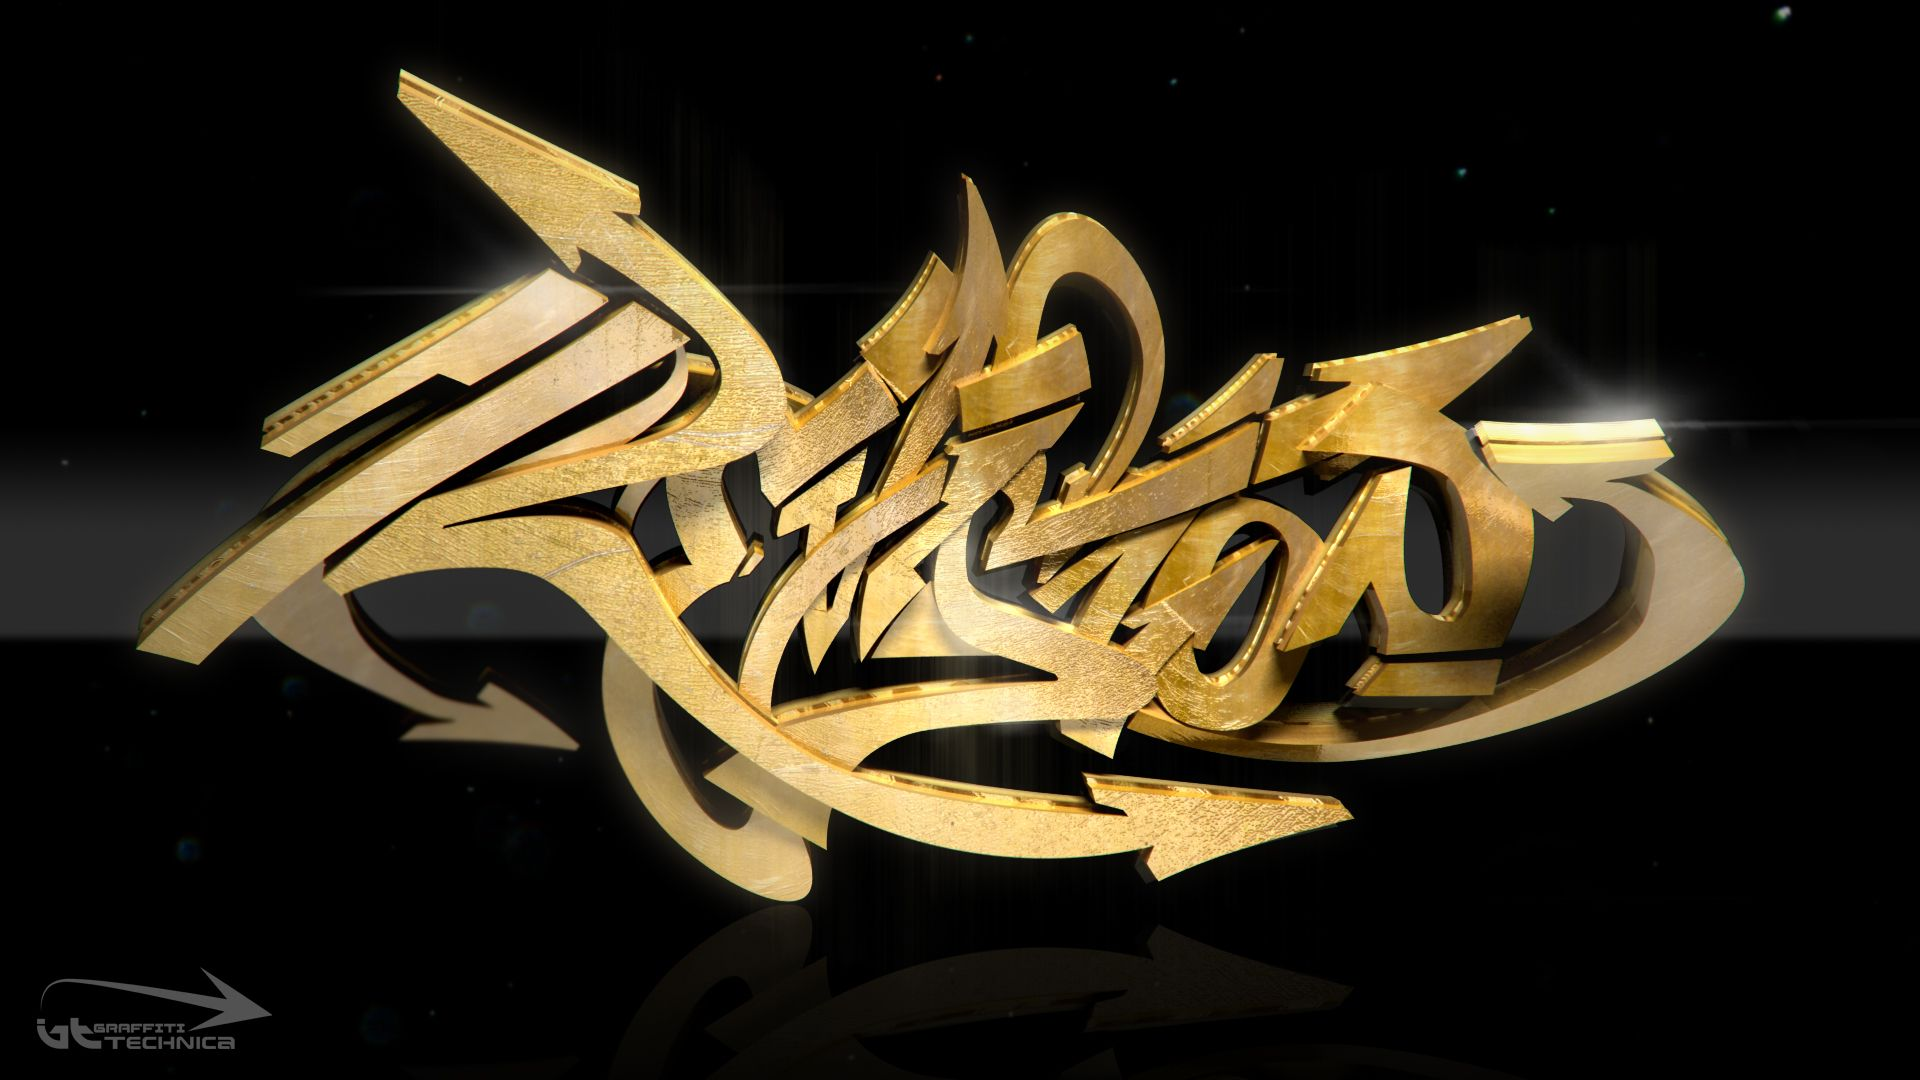 Graffiti creator online android - Tags 3d Graffiti Graffiti 3d Graffiti Creator Graffiti Font Graffiti